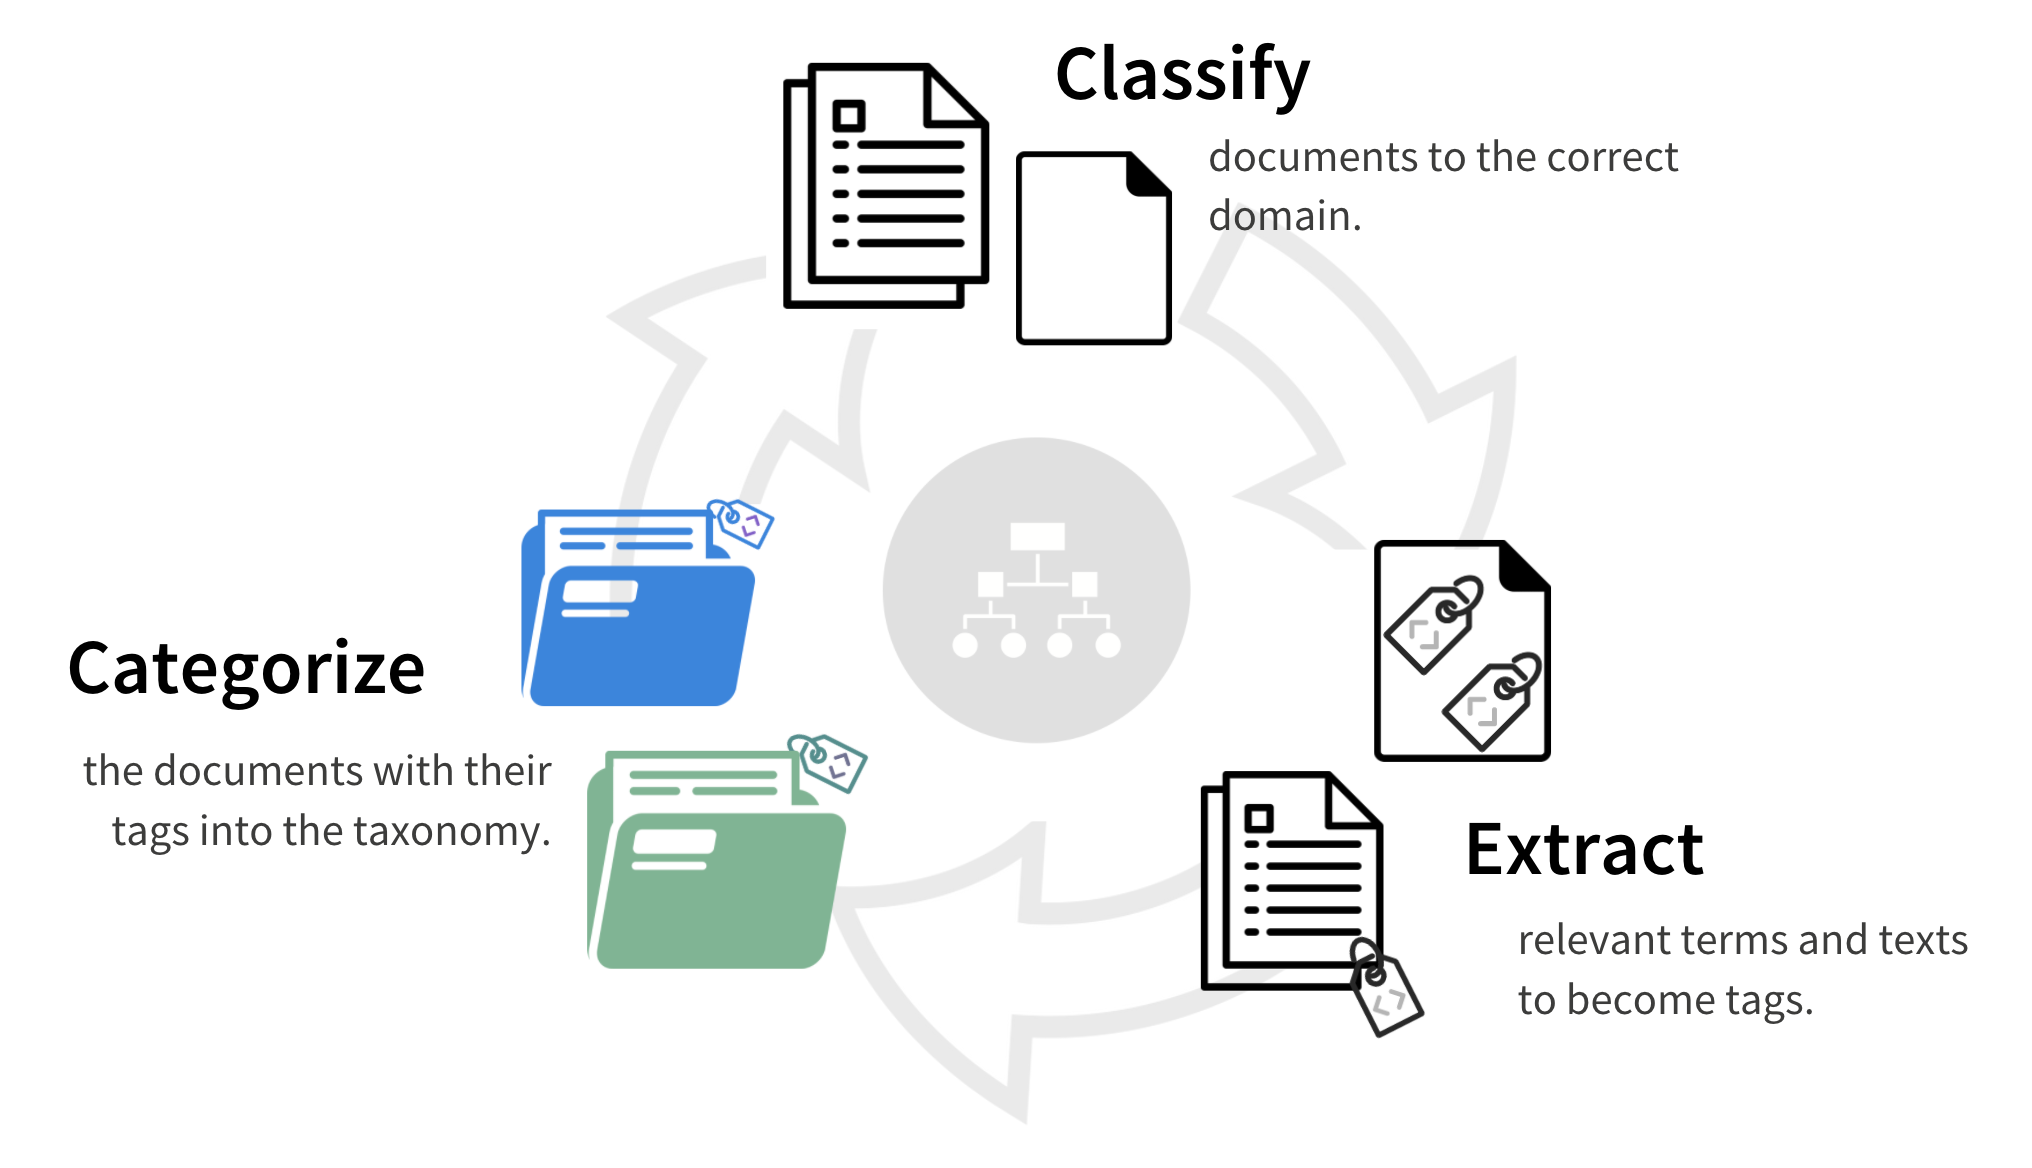 This infographic illustrates the general workflow of auto classification.